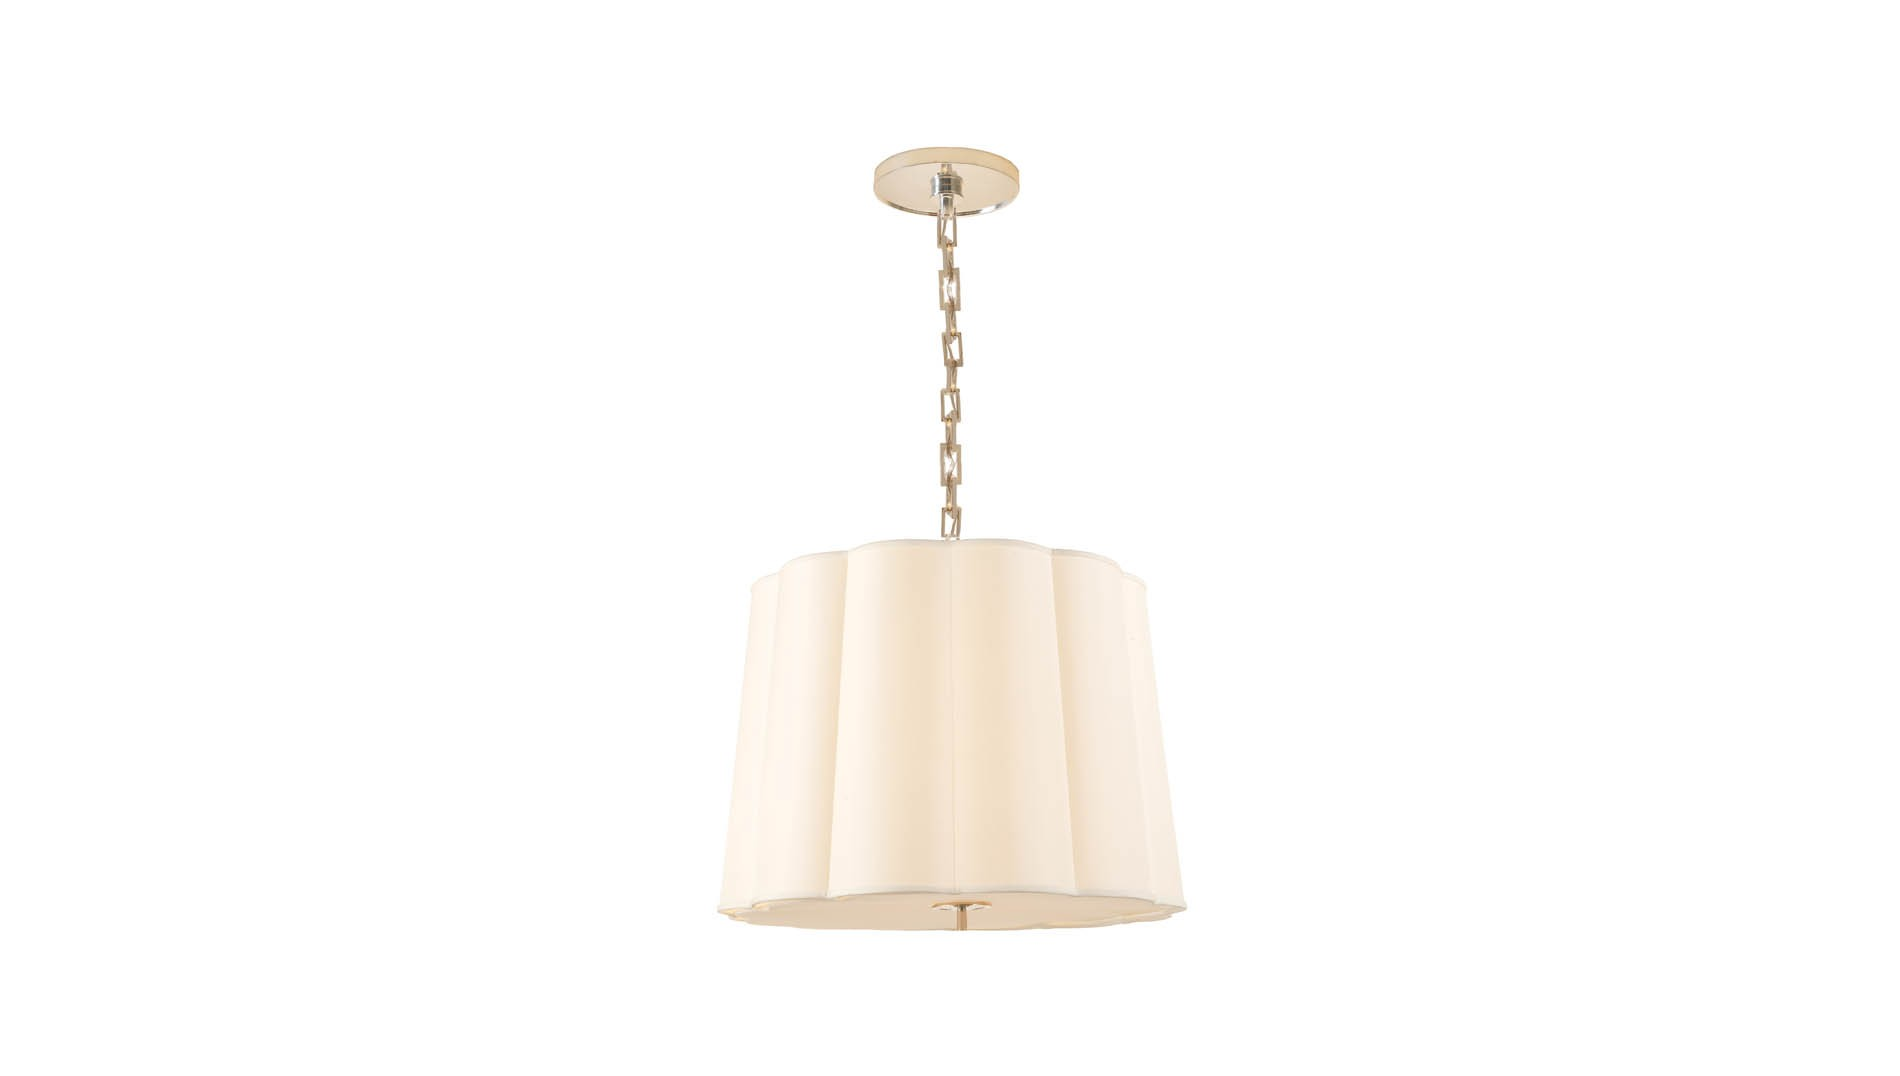 Charming visual comfort lighting for your lighting design with visual comfort lamps